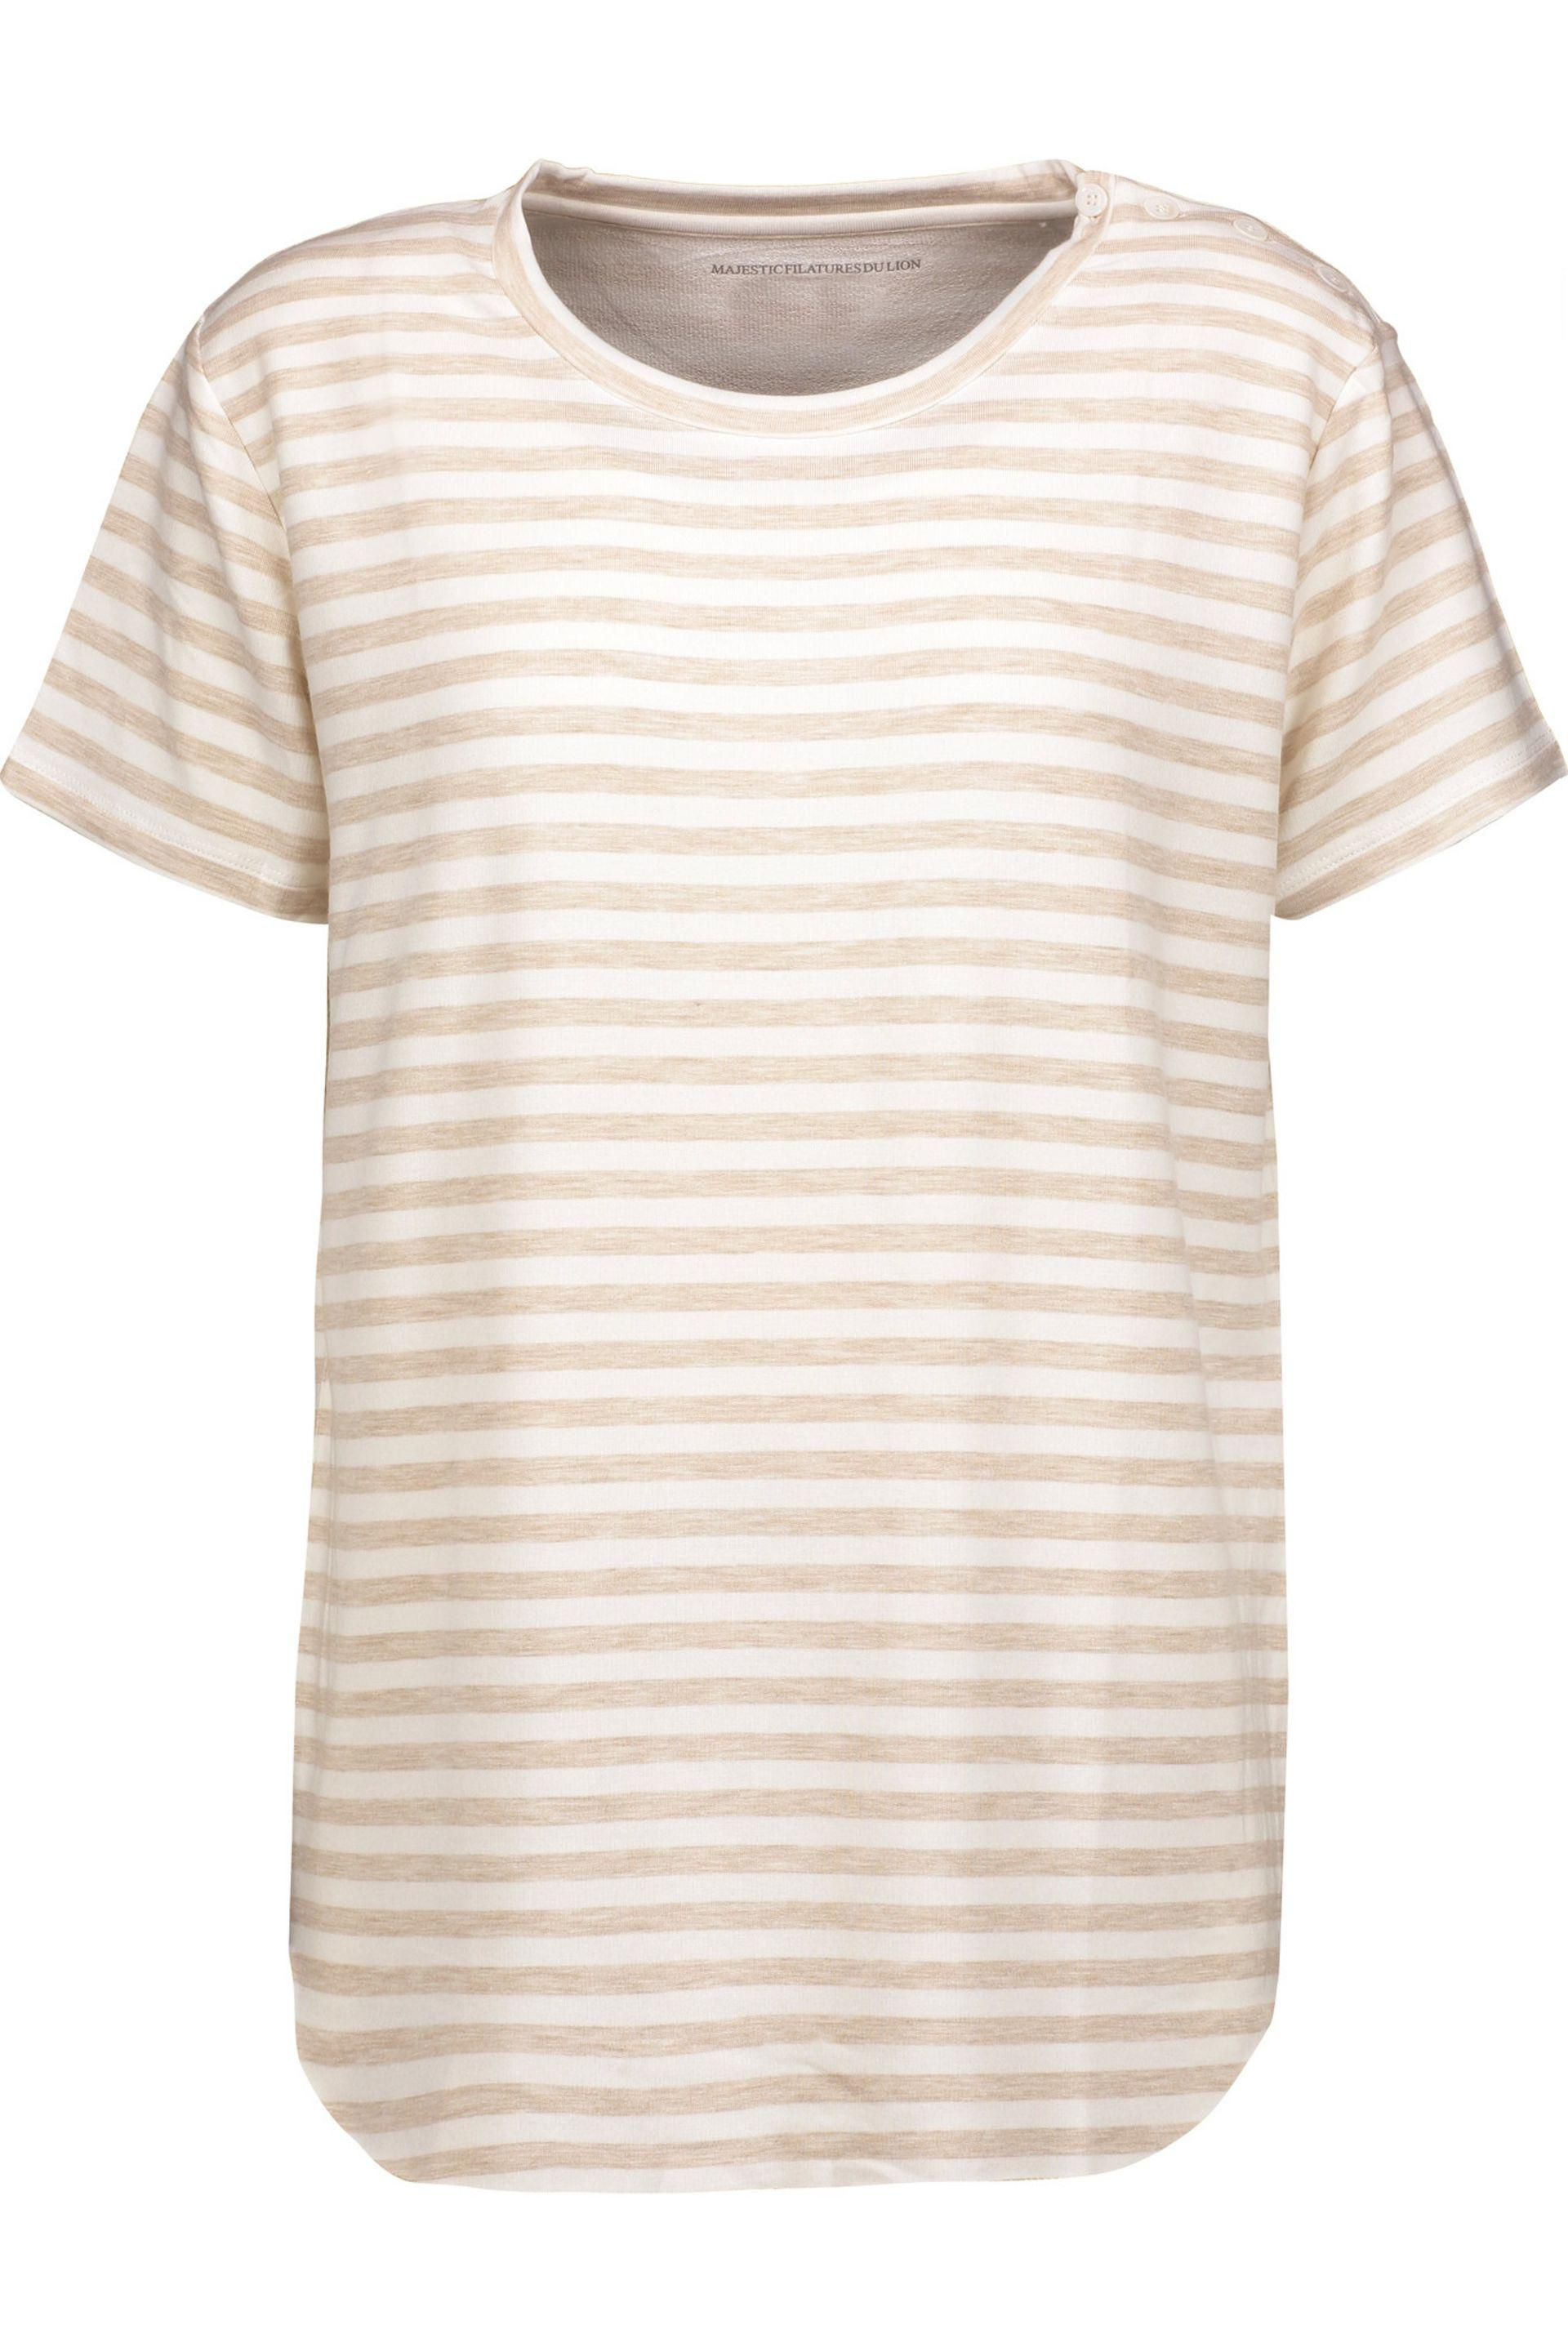 Majestic Filatures Woman Striped Slub Linen-jersey Top Off-white Size 3 Majestic Filatures Clearance 2018 New Outlet Authentic Clearance Choice 0kuEYXTMxM